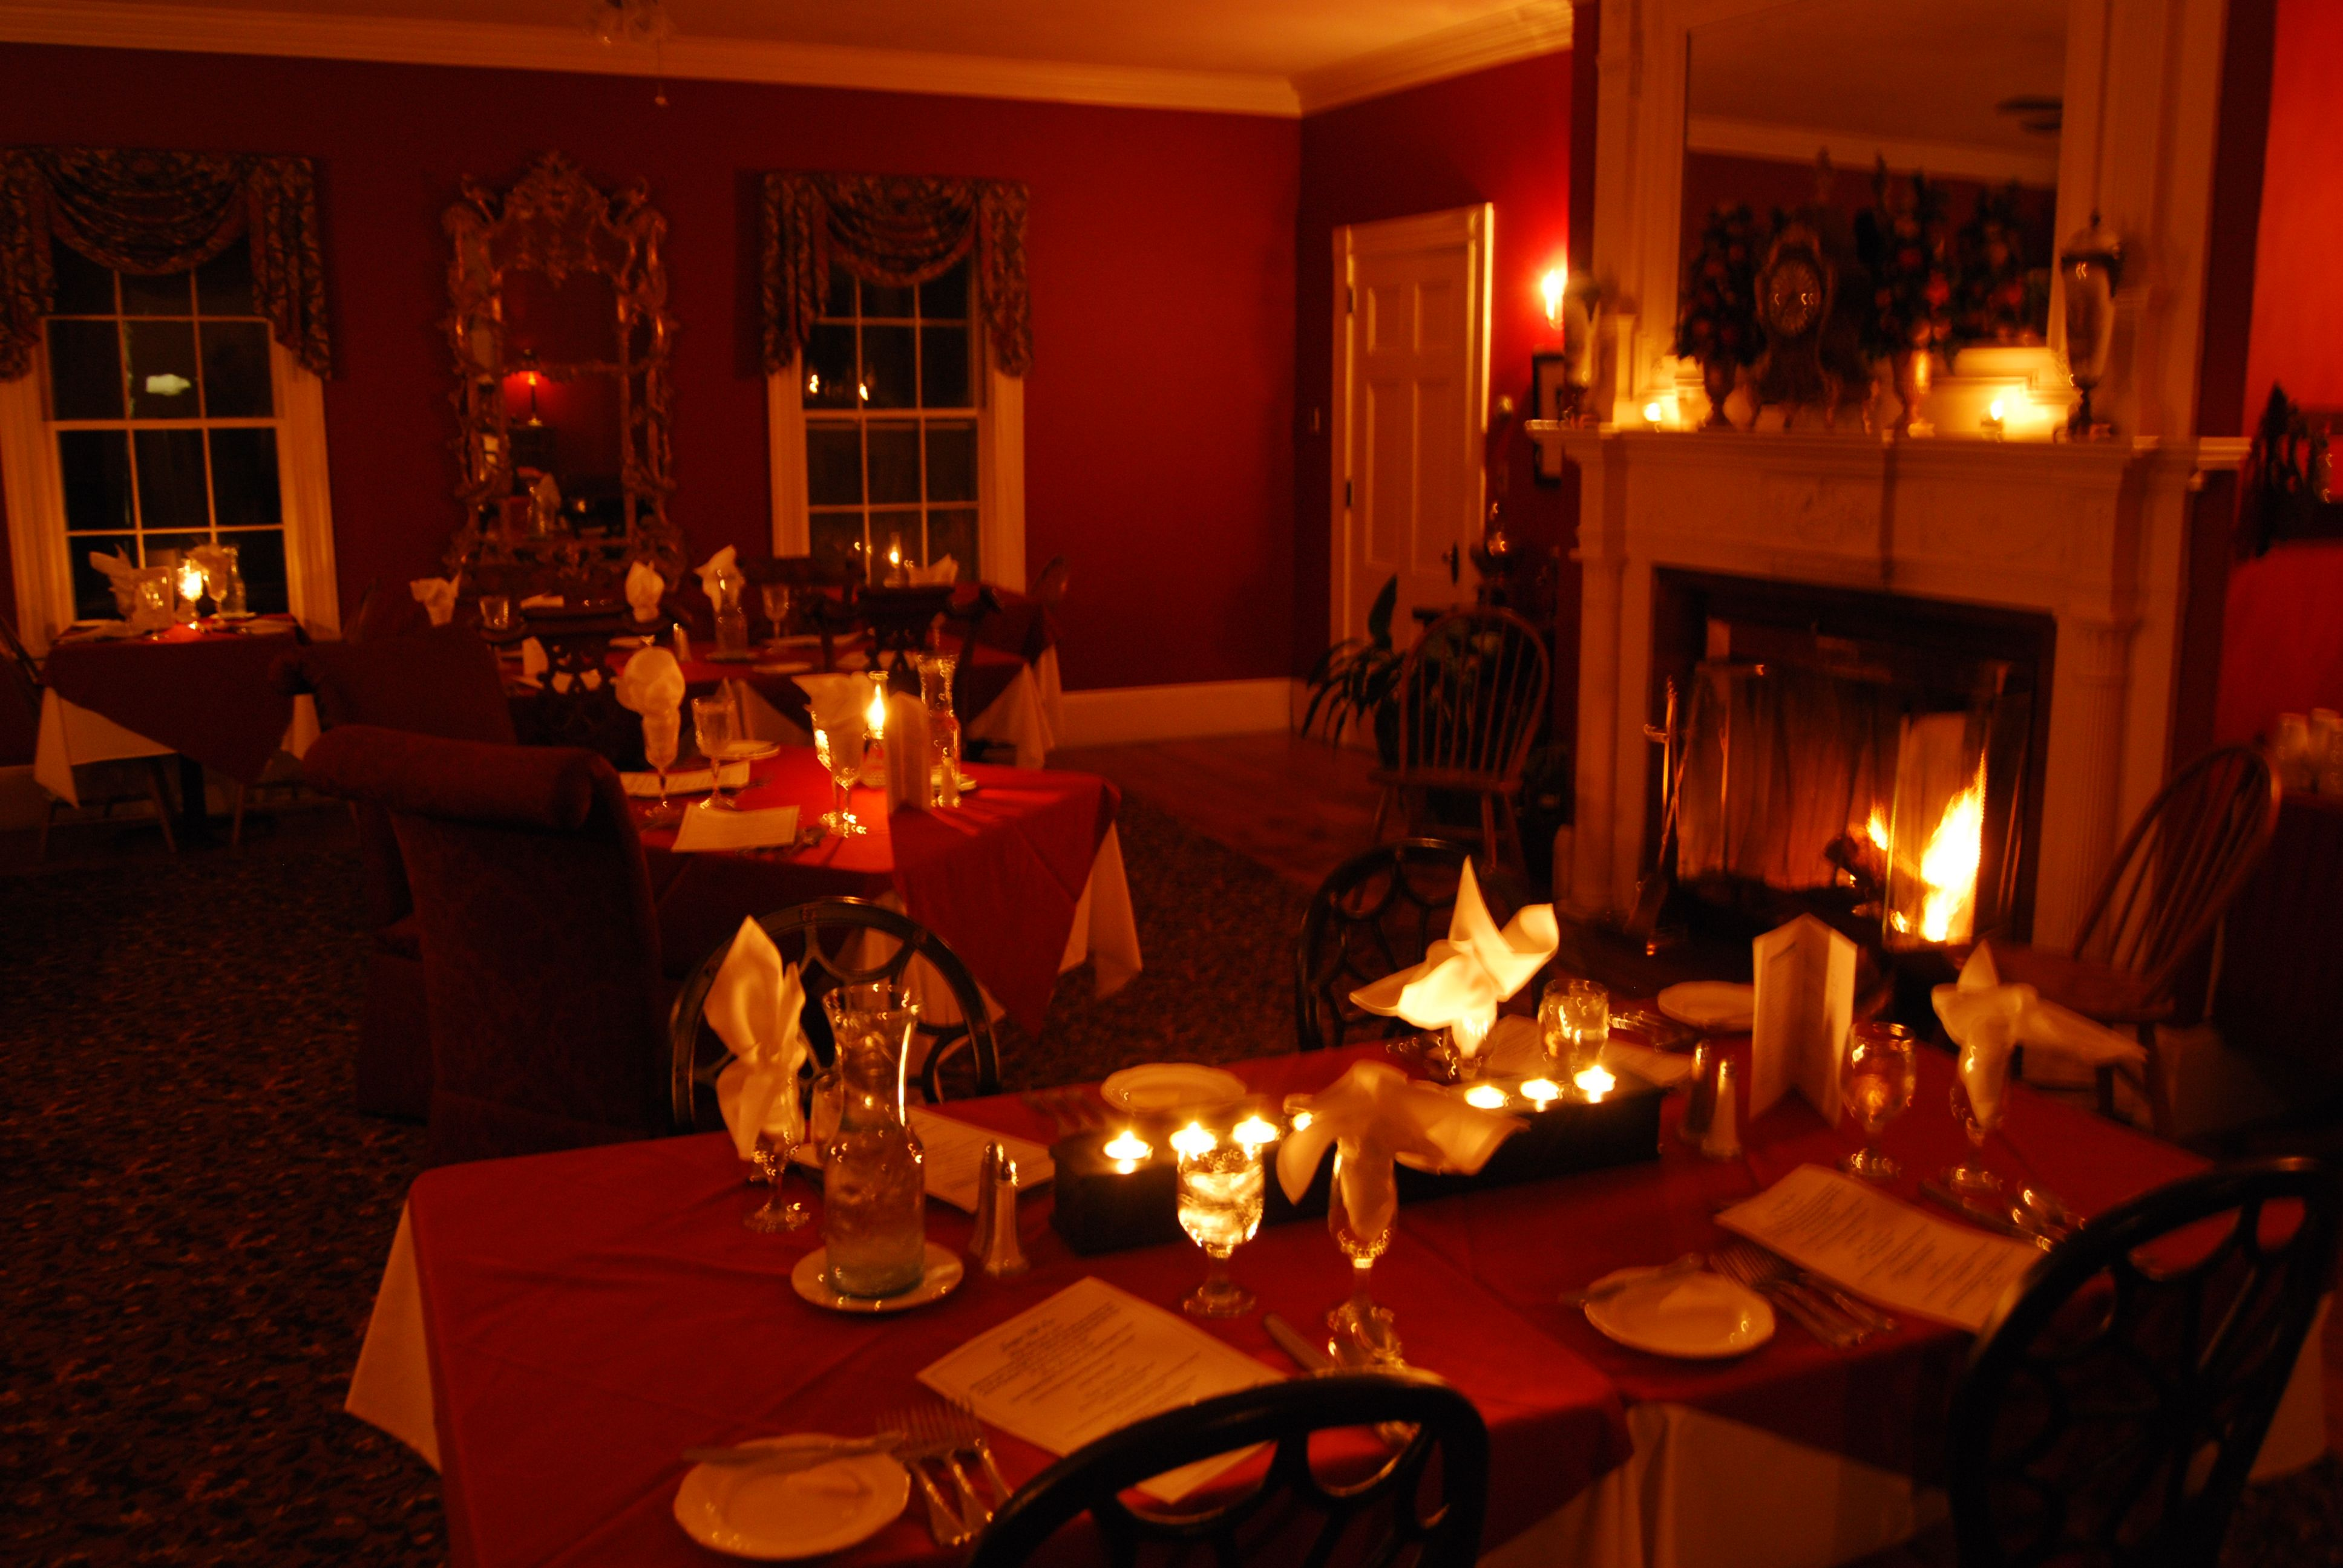 Candle light dinner table for two - Dessert Drinks